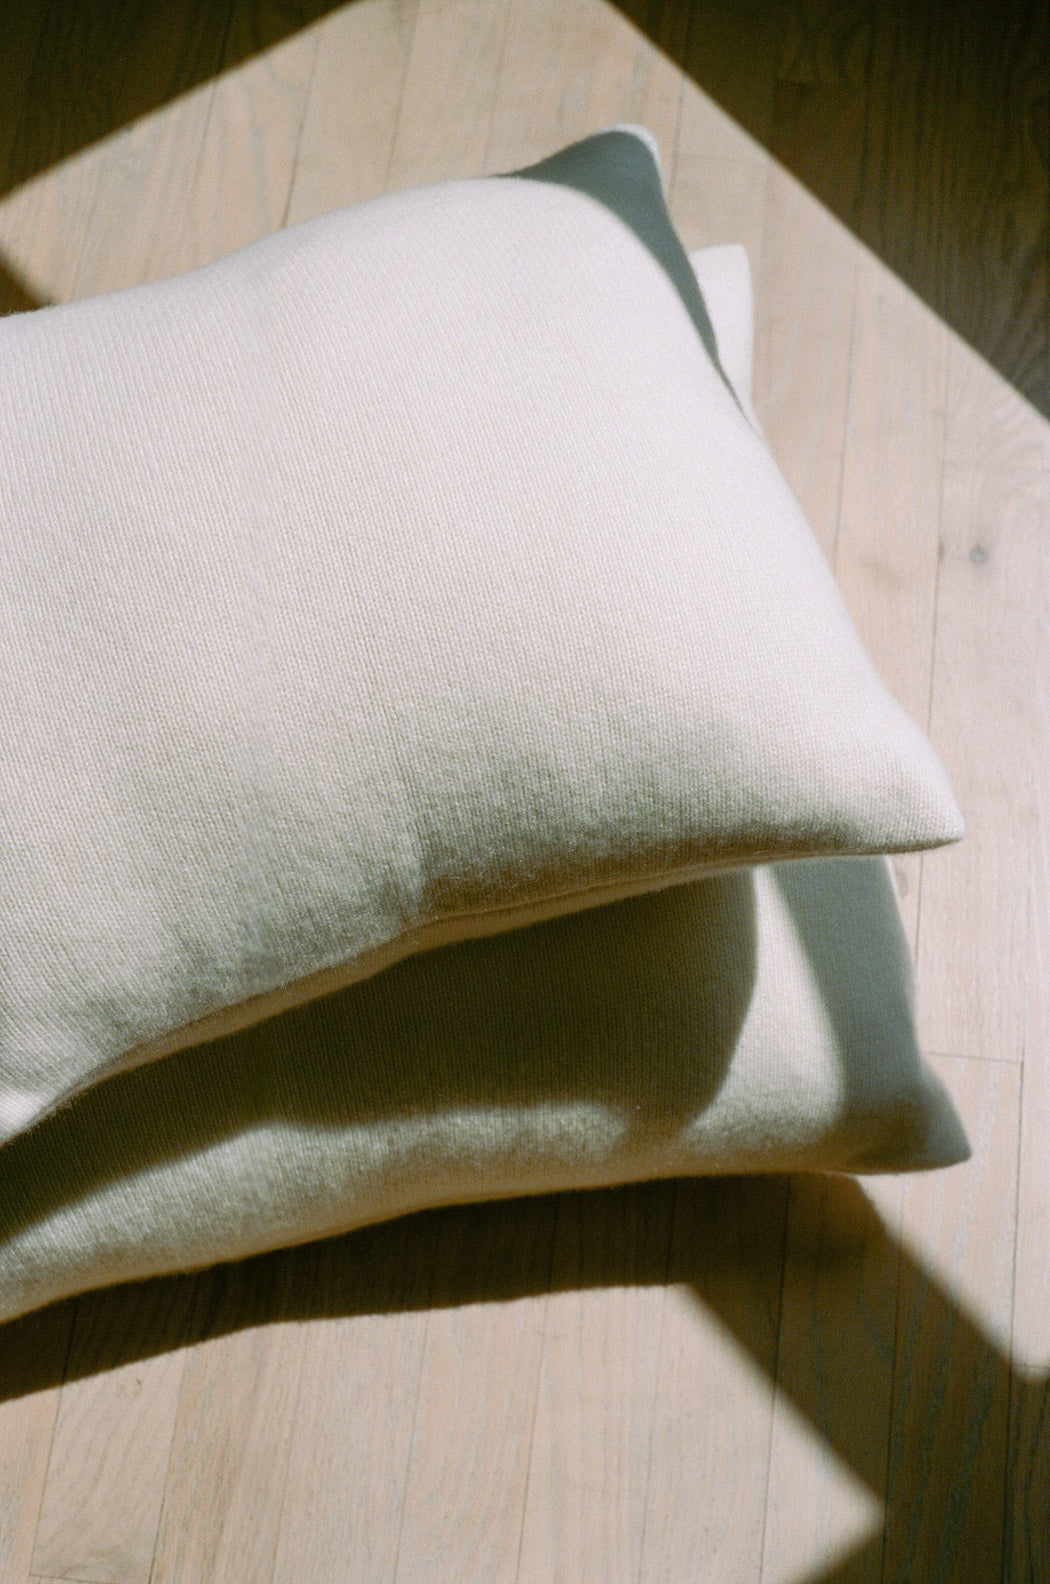 "Bespoke 24"" Italian Cashmere Jersey Knit Down Pillow - Custom Colors Made to Order (8-Week Lead Time)"